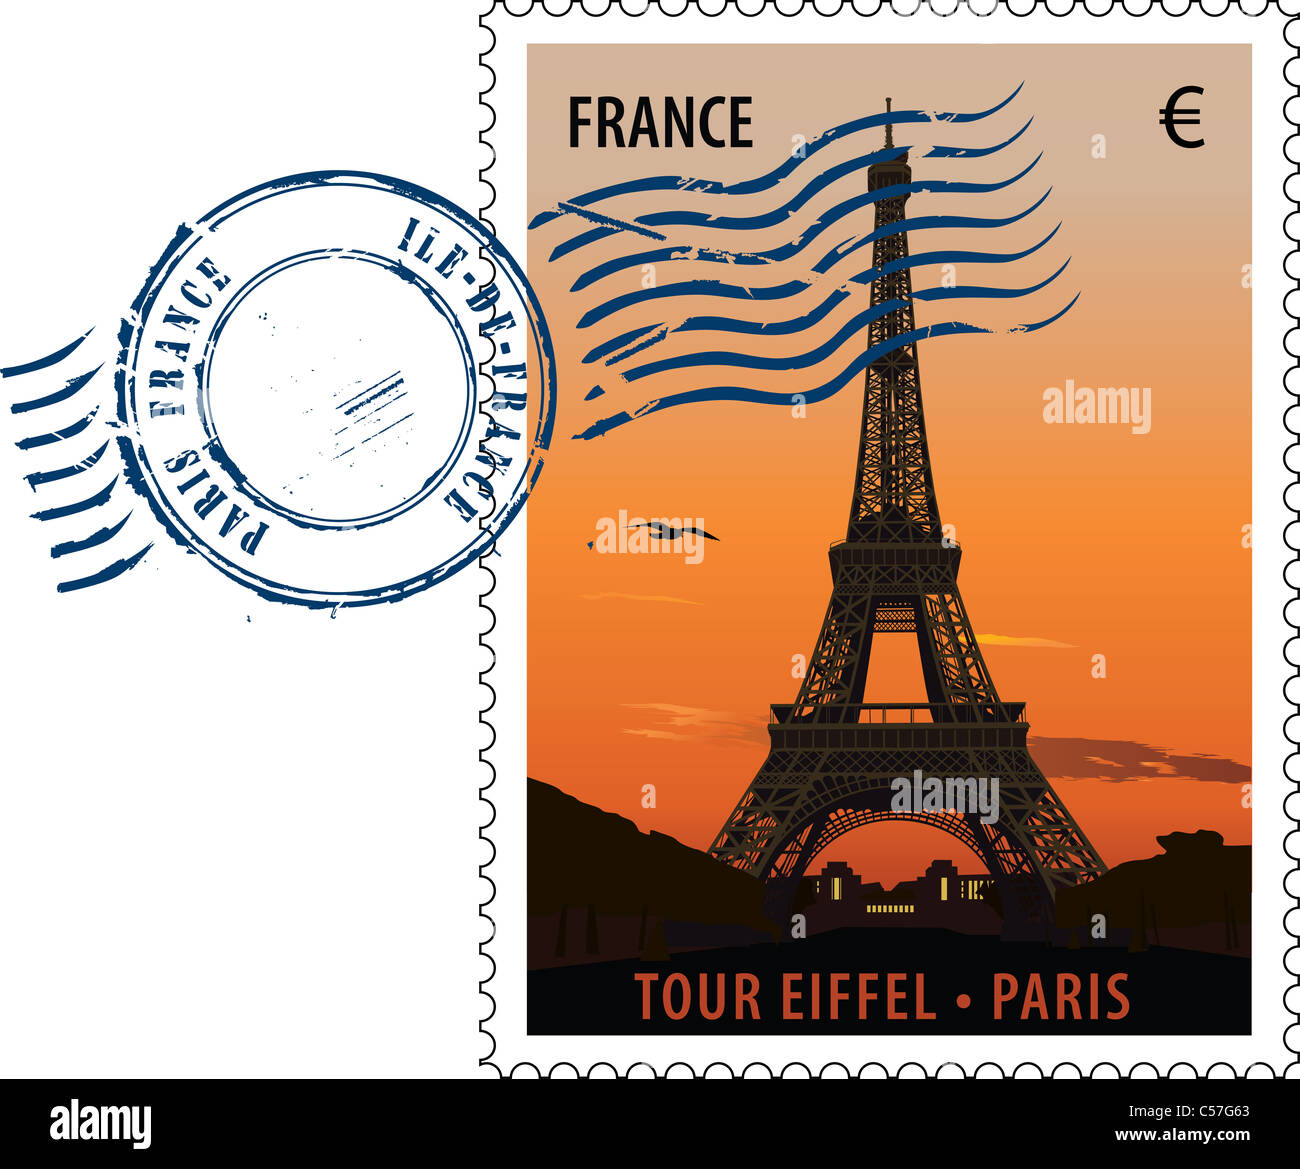 Vector postmark with sight of eiffel tower at sunset - Stock Image